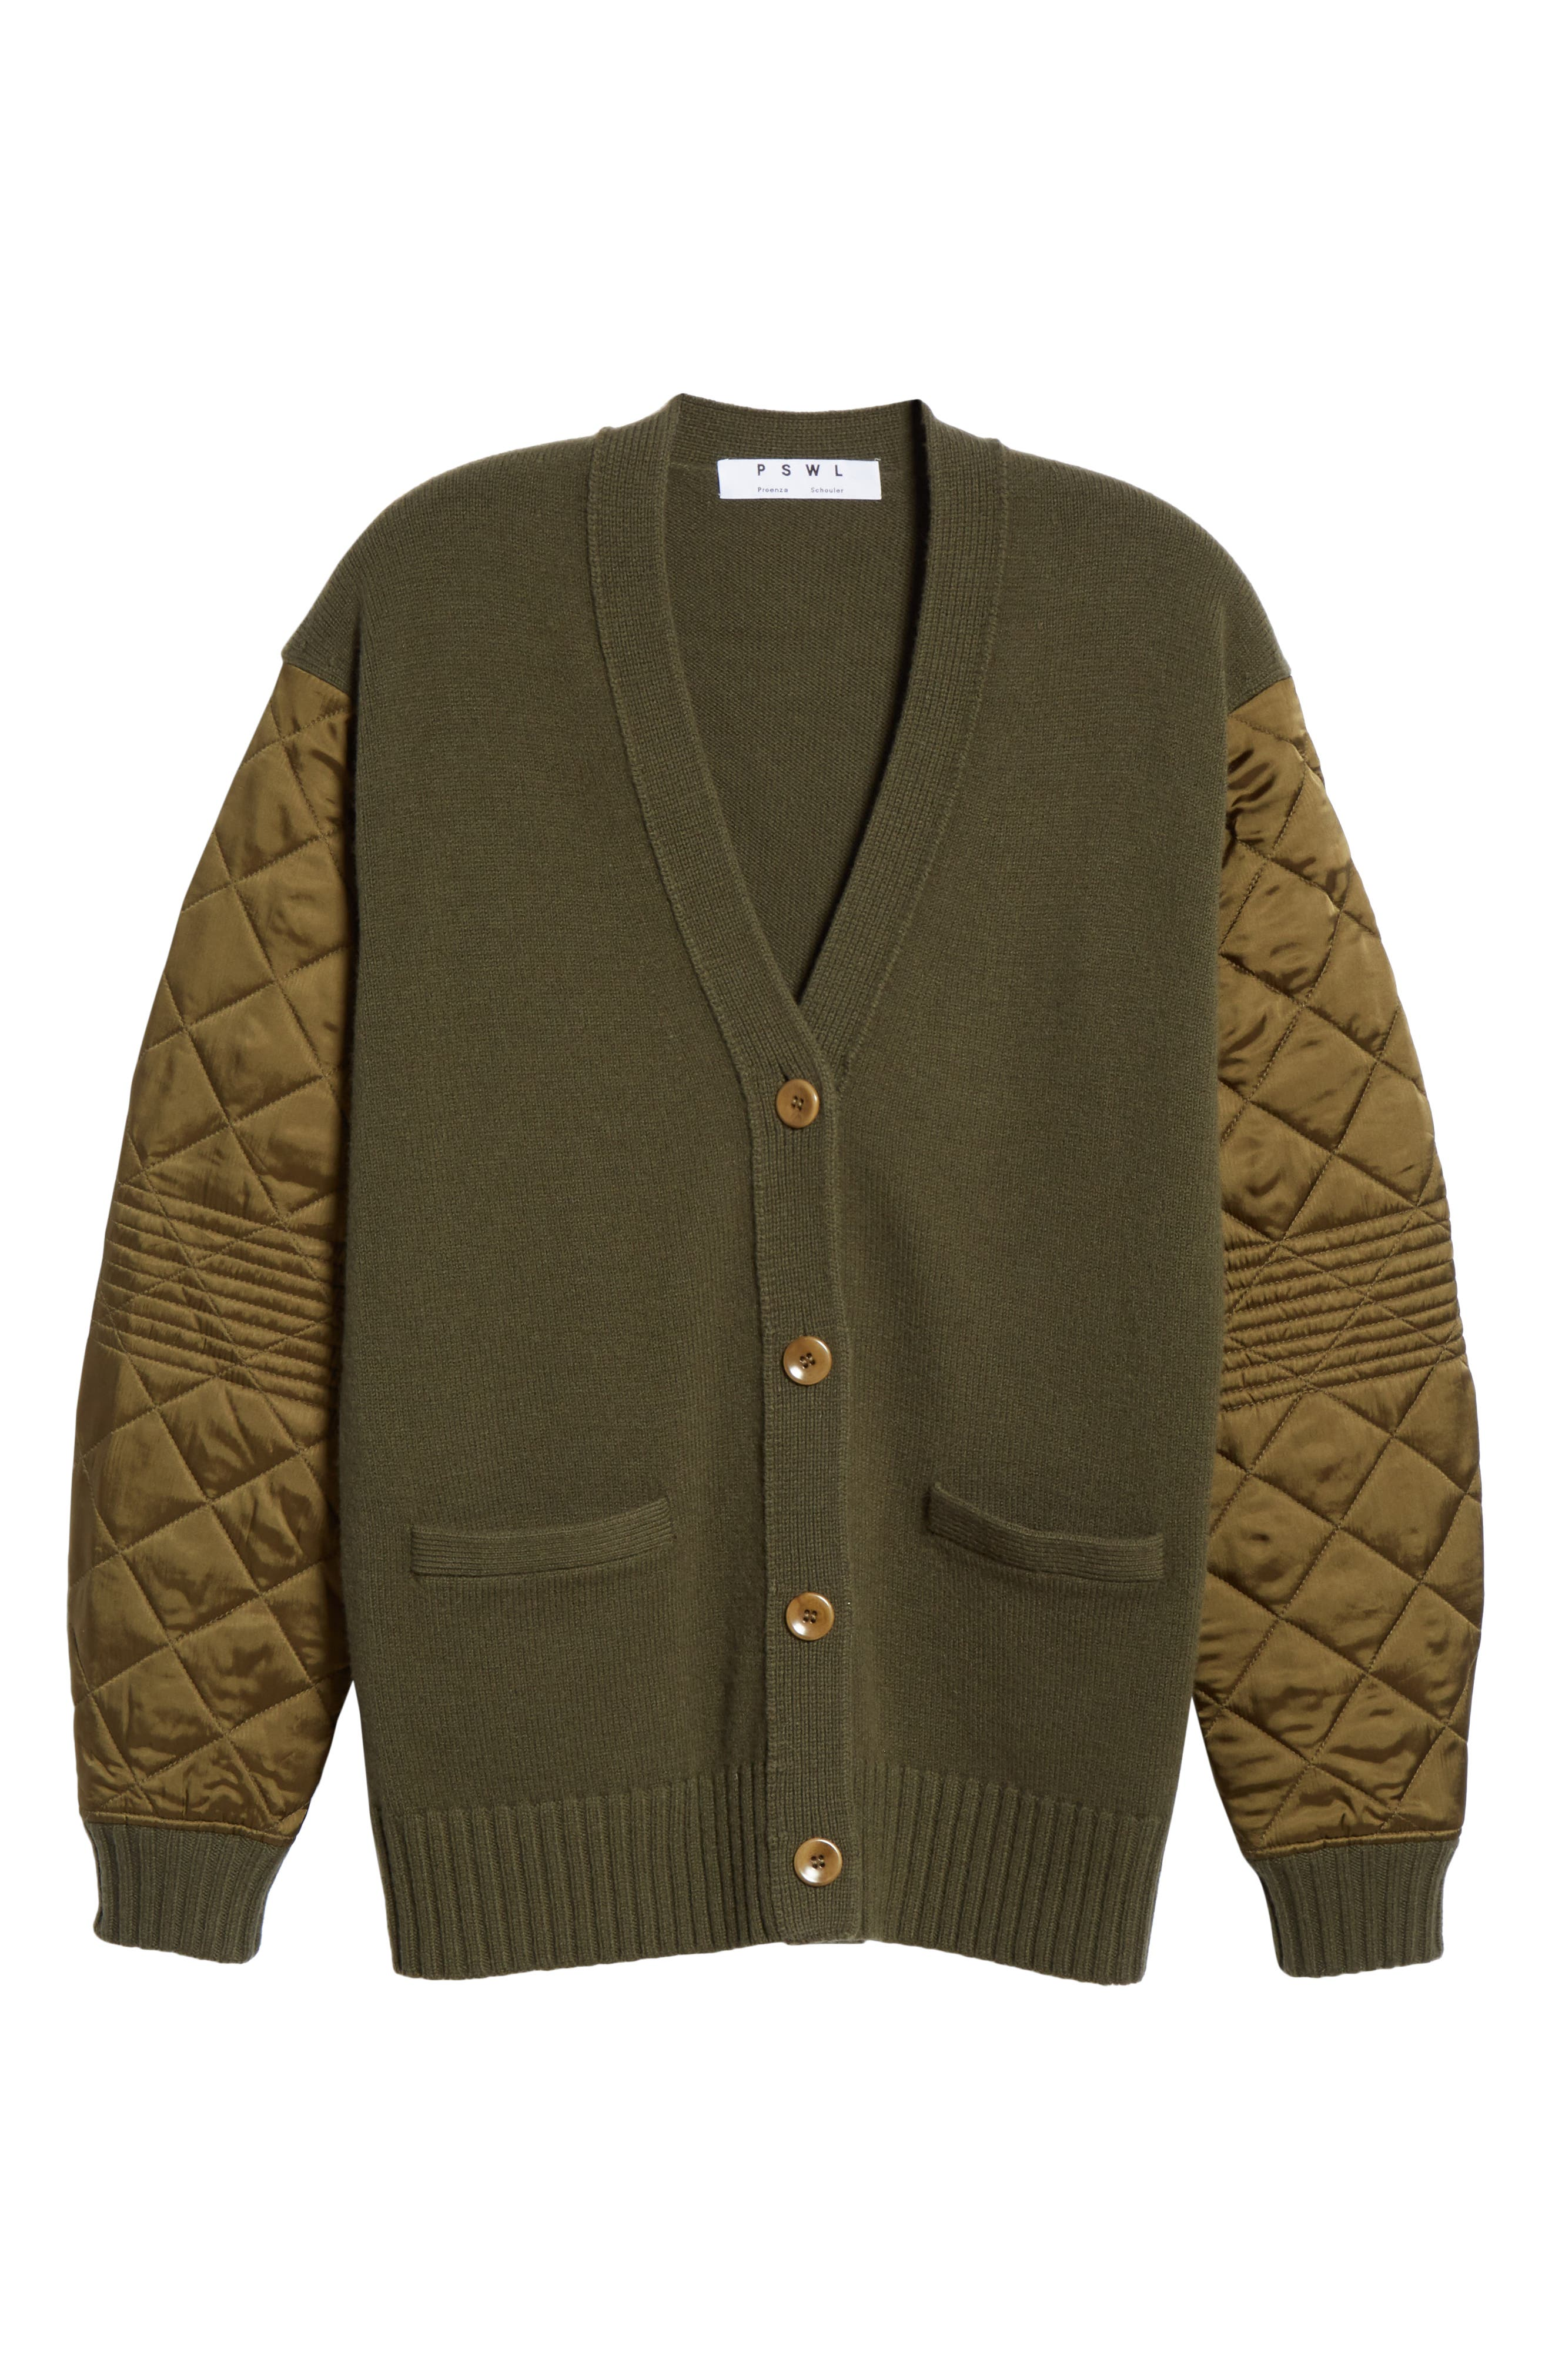 PROENZA SCHOULER, PSWL Quilted Sleeve Merino Wool Cardigan, Alternate thumbnail 6, color, FOREST